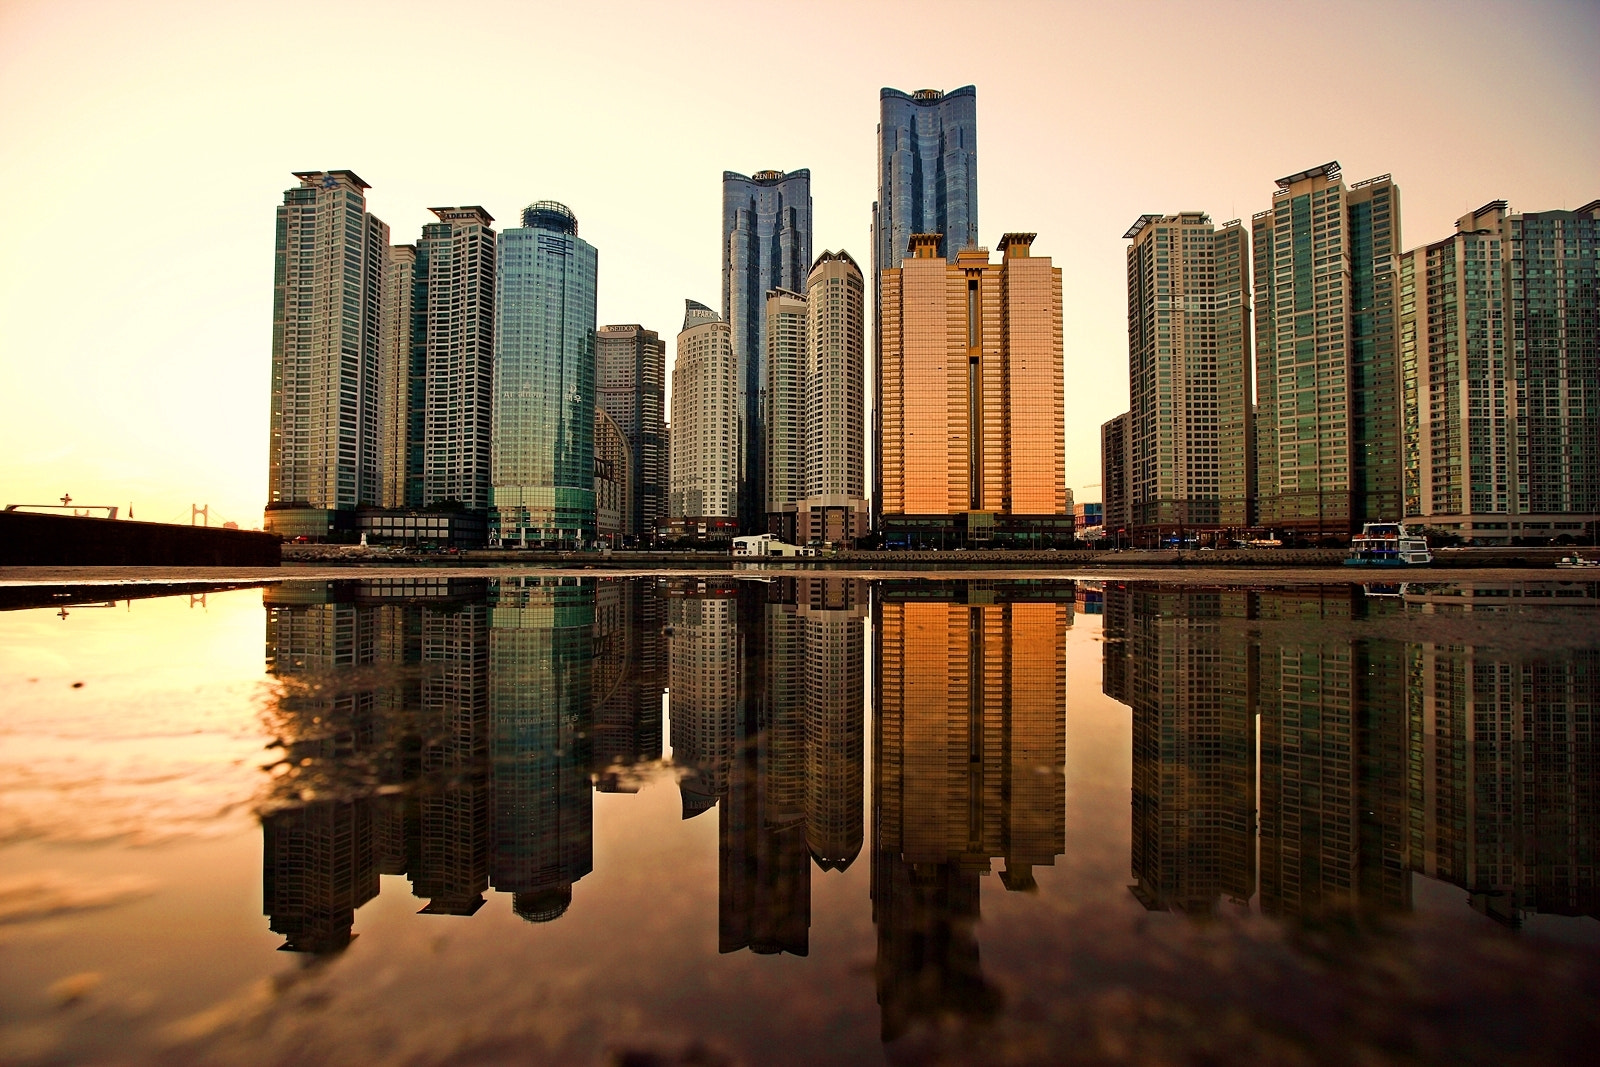 Photograph Marine City GoldenTime Reflection by RYNTEN  on 500px